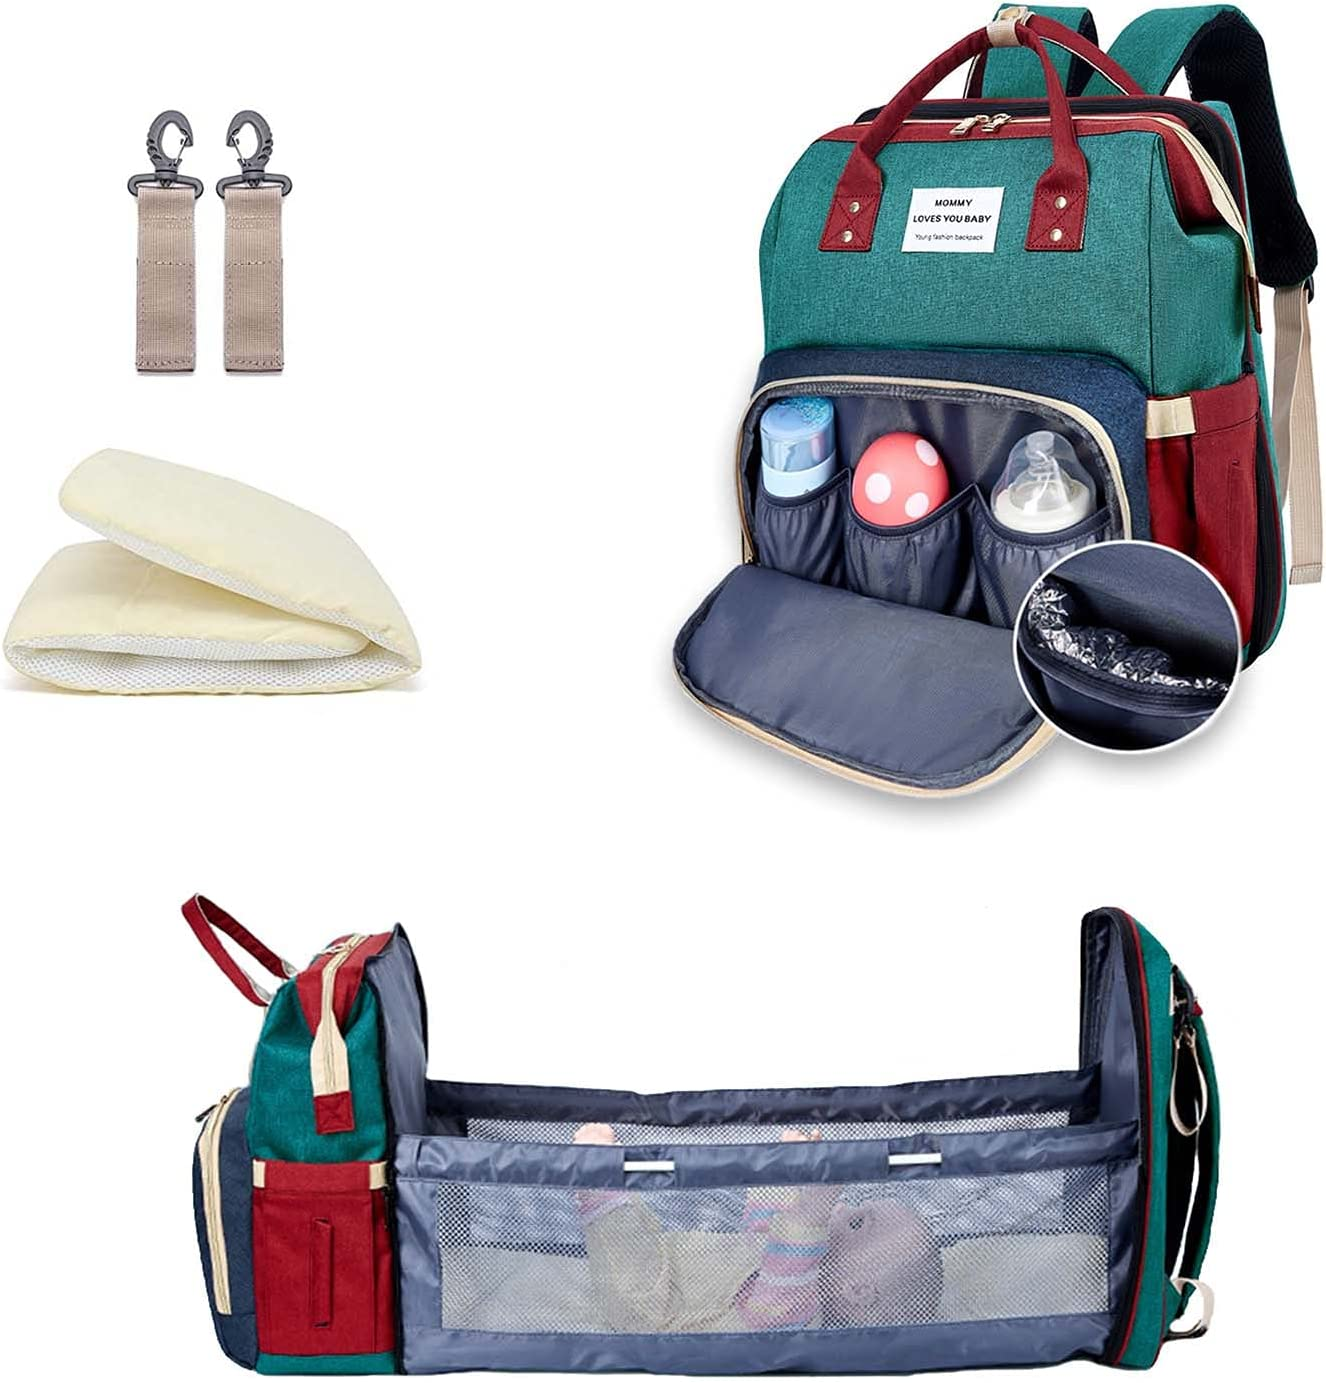 Diaper Bag Backpack , Amenpoki Diaper Bag with Changing Station,3 in 1 Nappy Baby Diaper Backpack with Bassinet, Multifunction Portable Travel Bag Backpack for Baby with Stroller Large Capacity